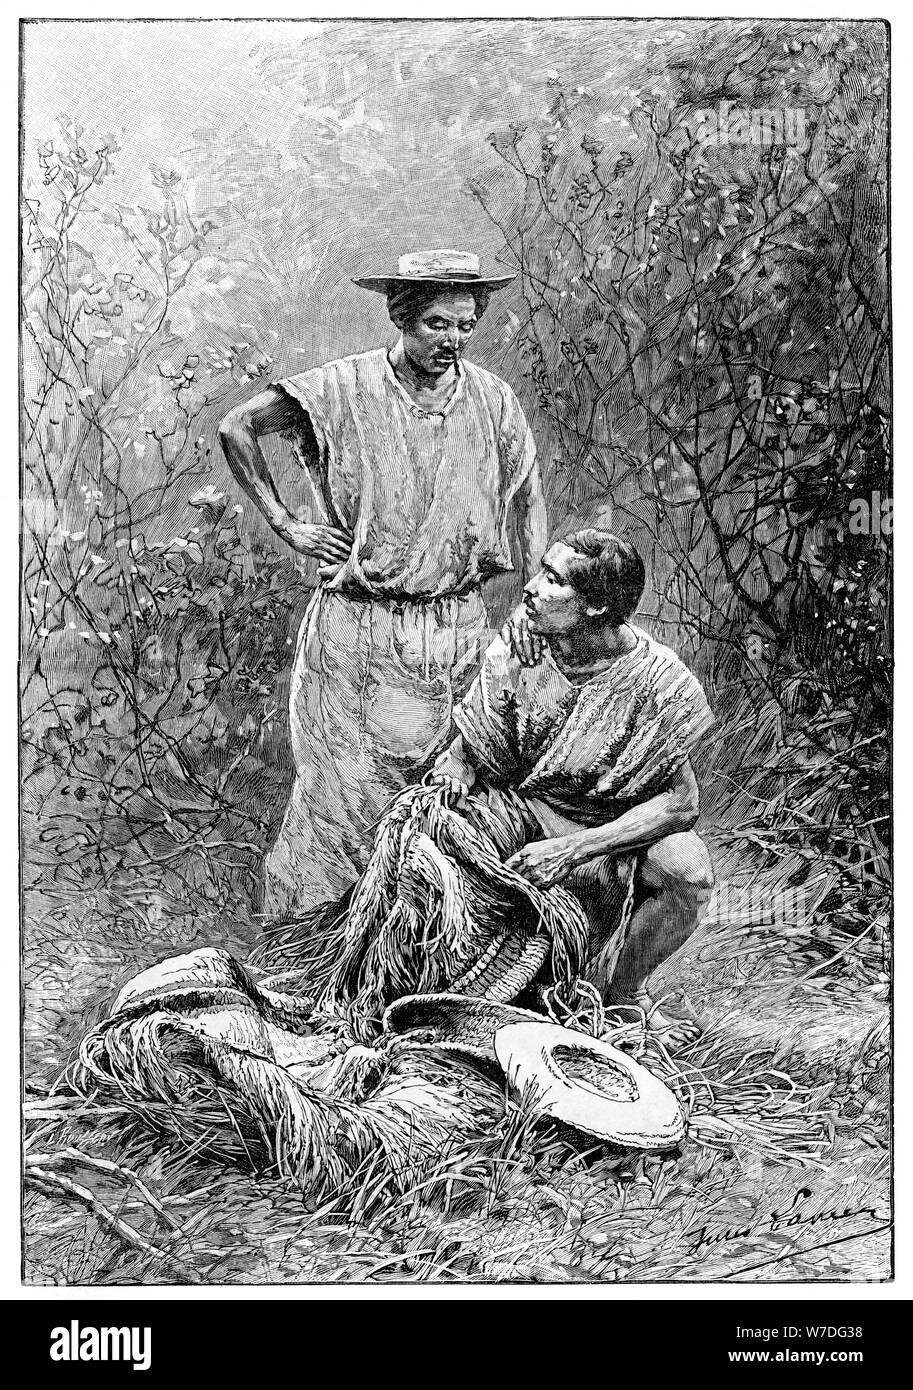 Mojos Indians, South America, 1895. Artist: Unknown Stock Photo